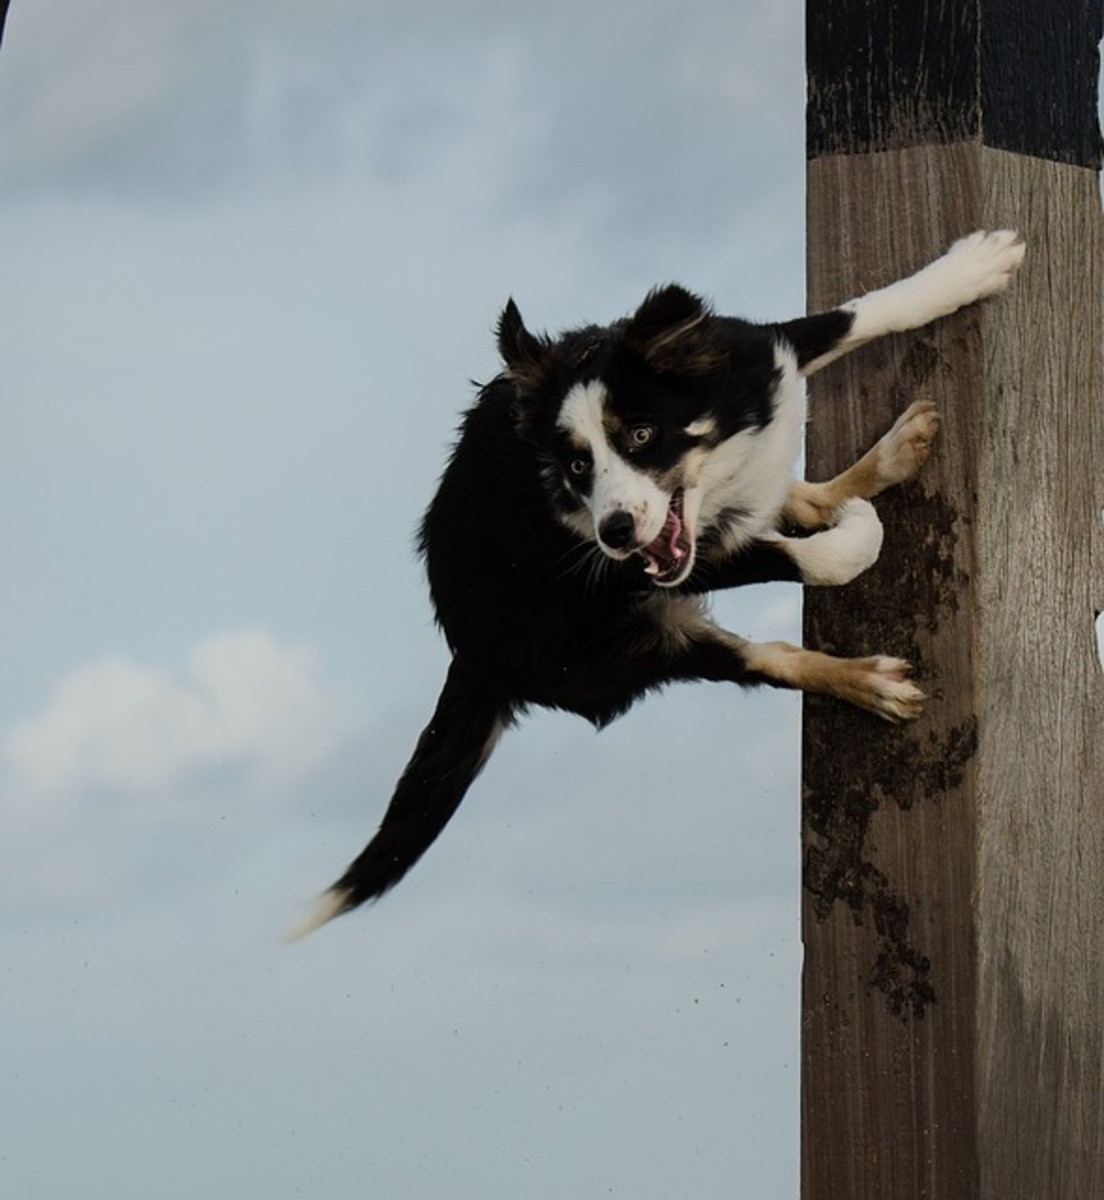 Dog jumping off pole